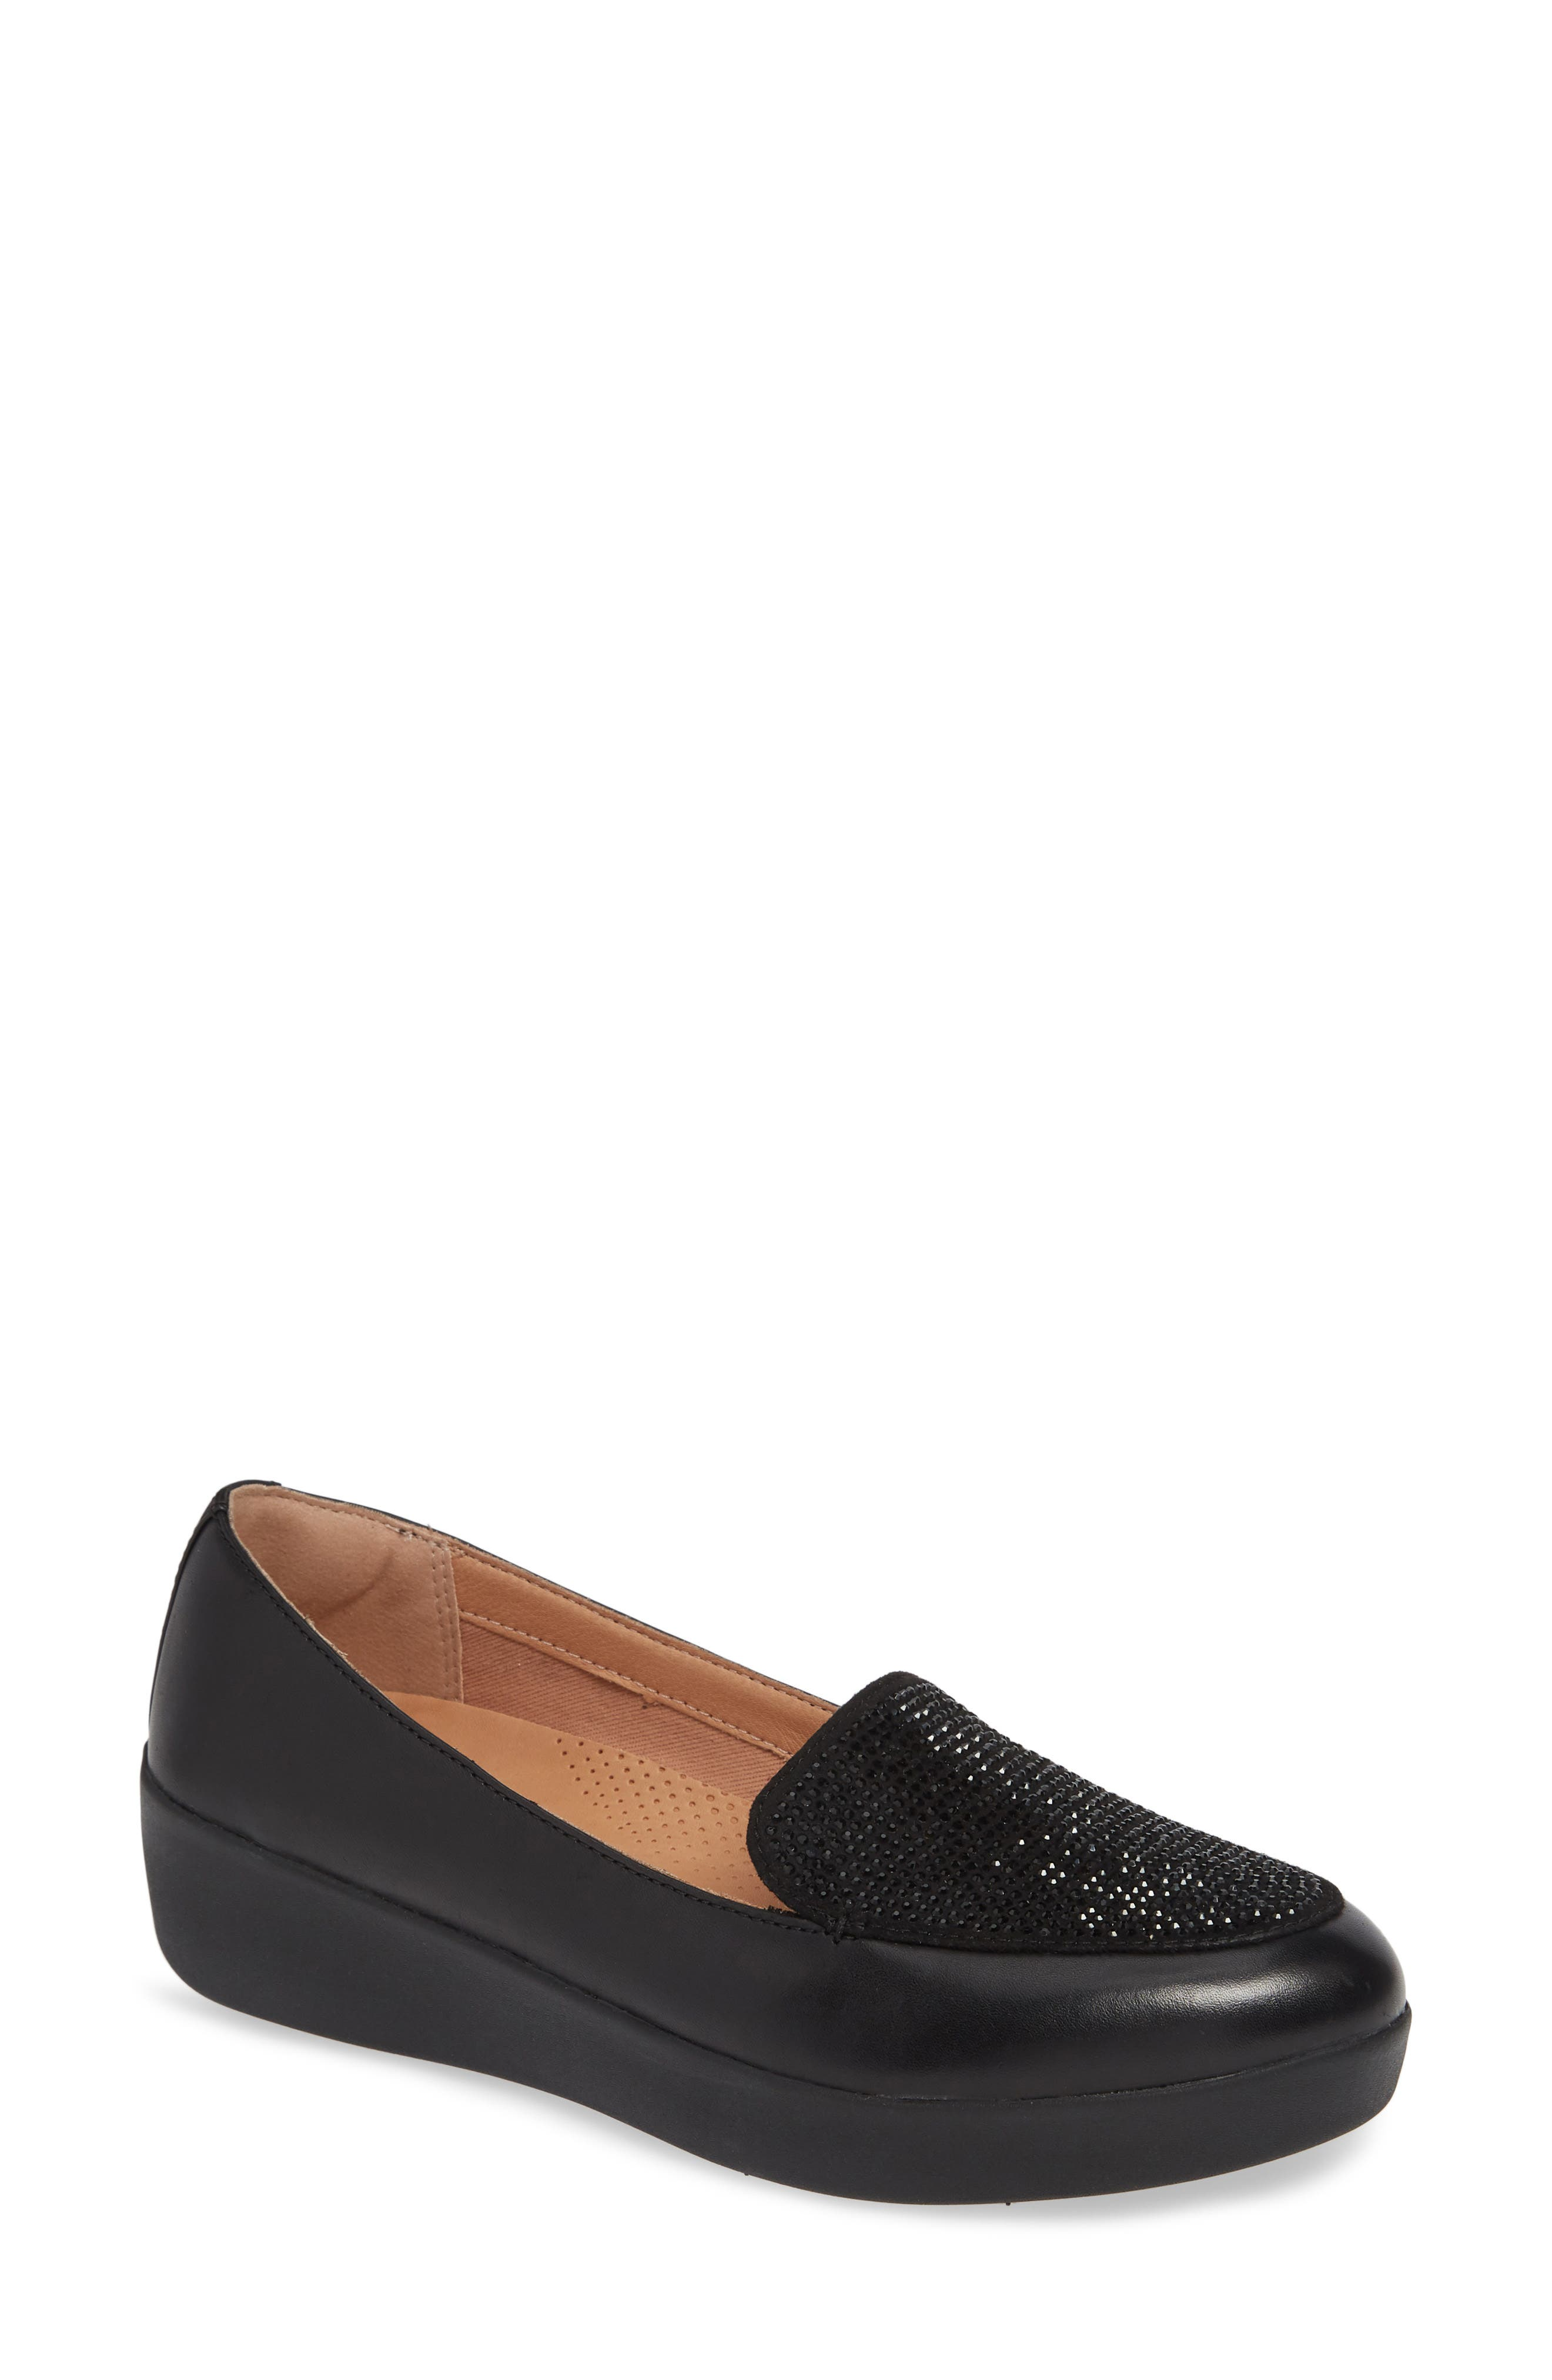 Image of Fitflop Leather Crystal Slip-On Loafer